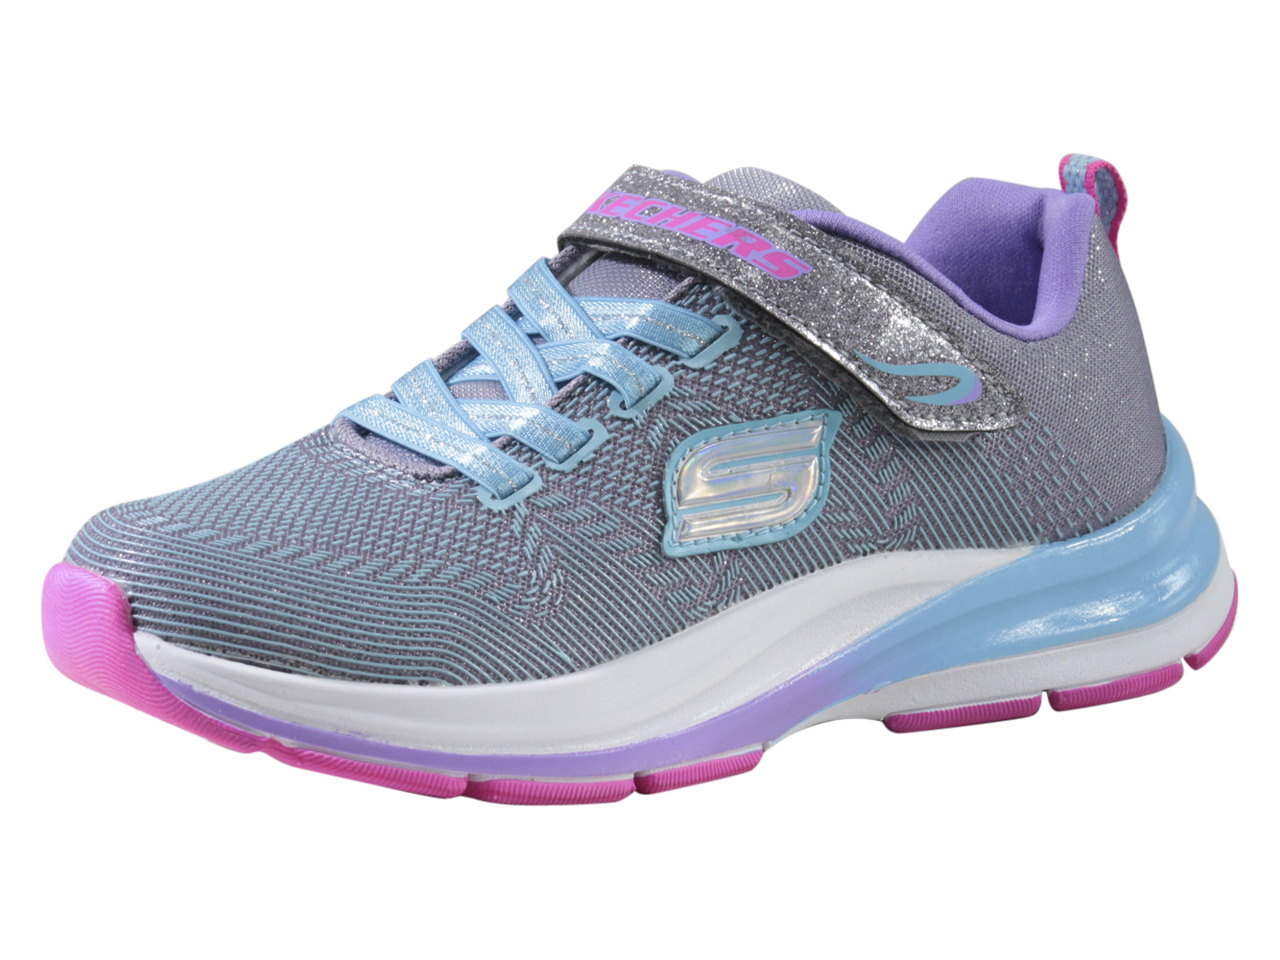 Details about Skechers LittleBig Girl's Double Strides Duo Dash GrayBlue Sneakers Shoes